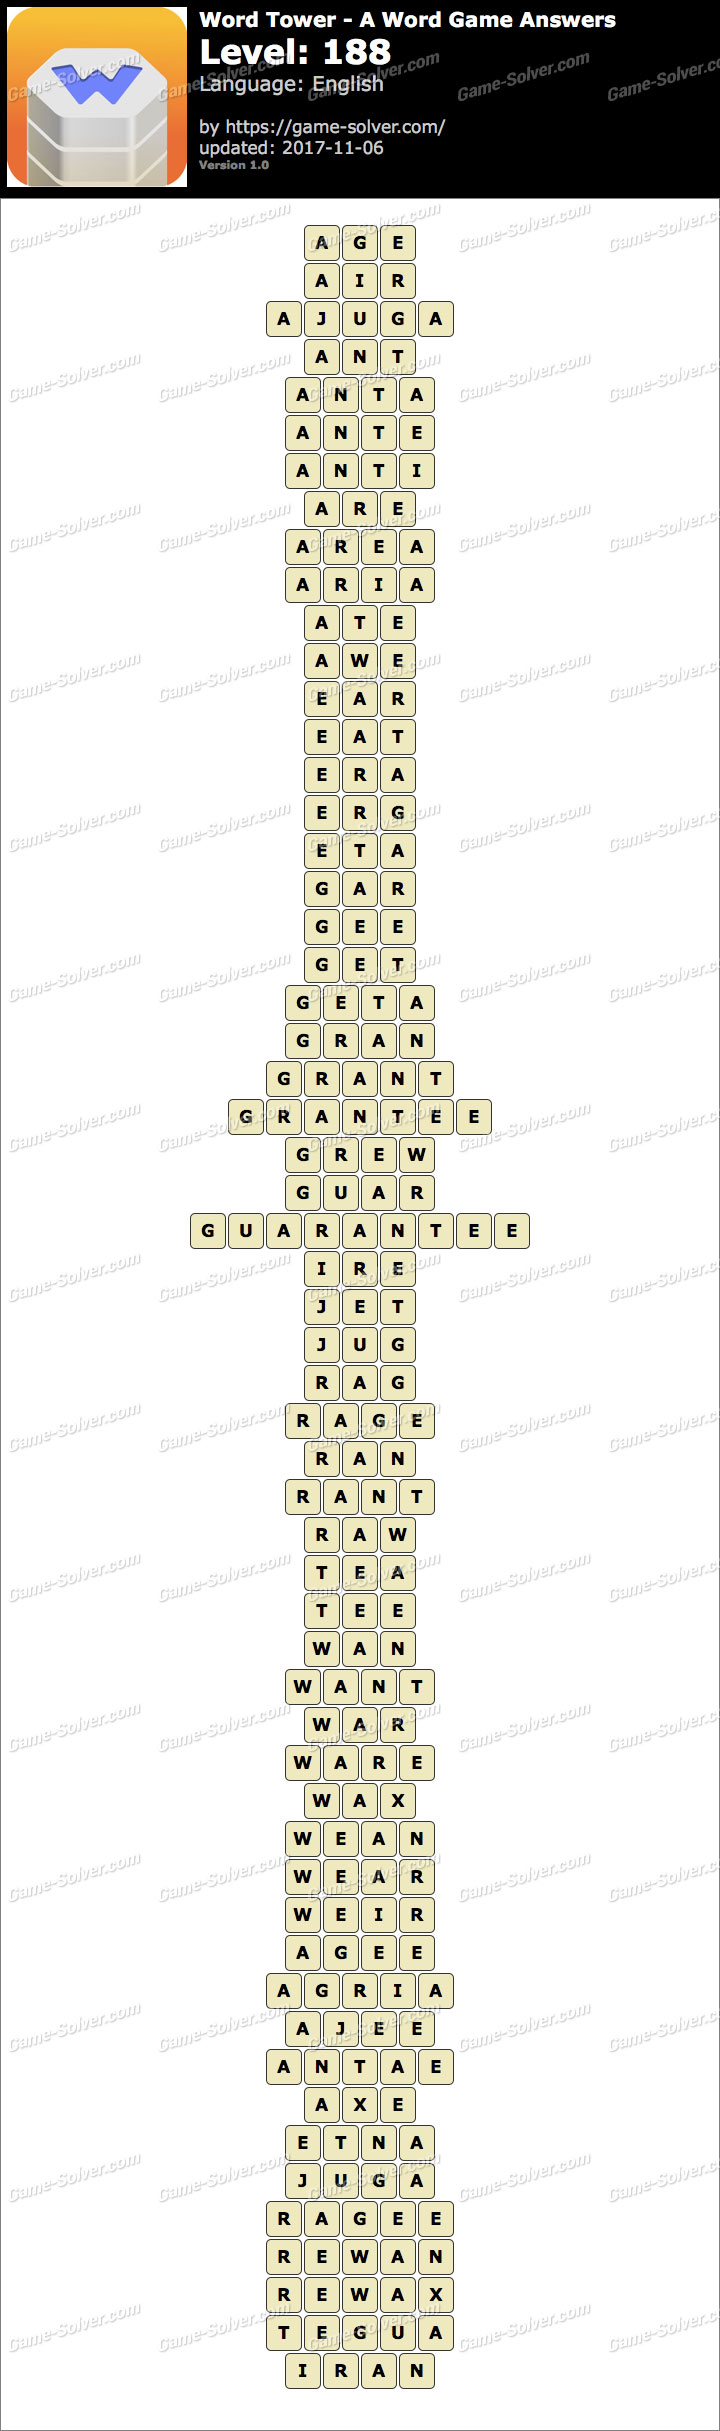 Word Tower Level 188 Answers